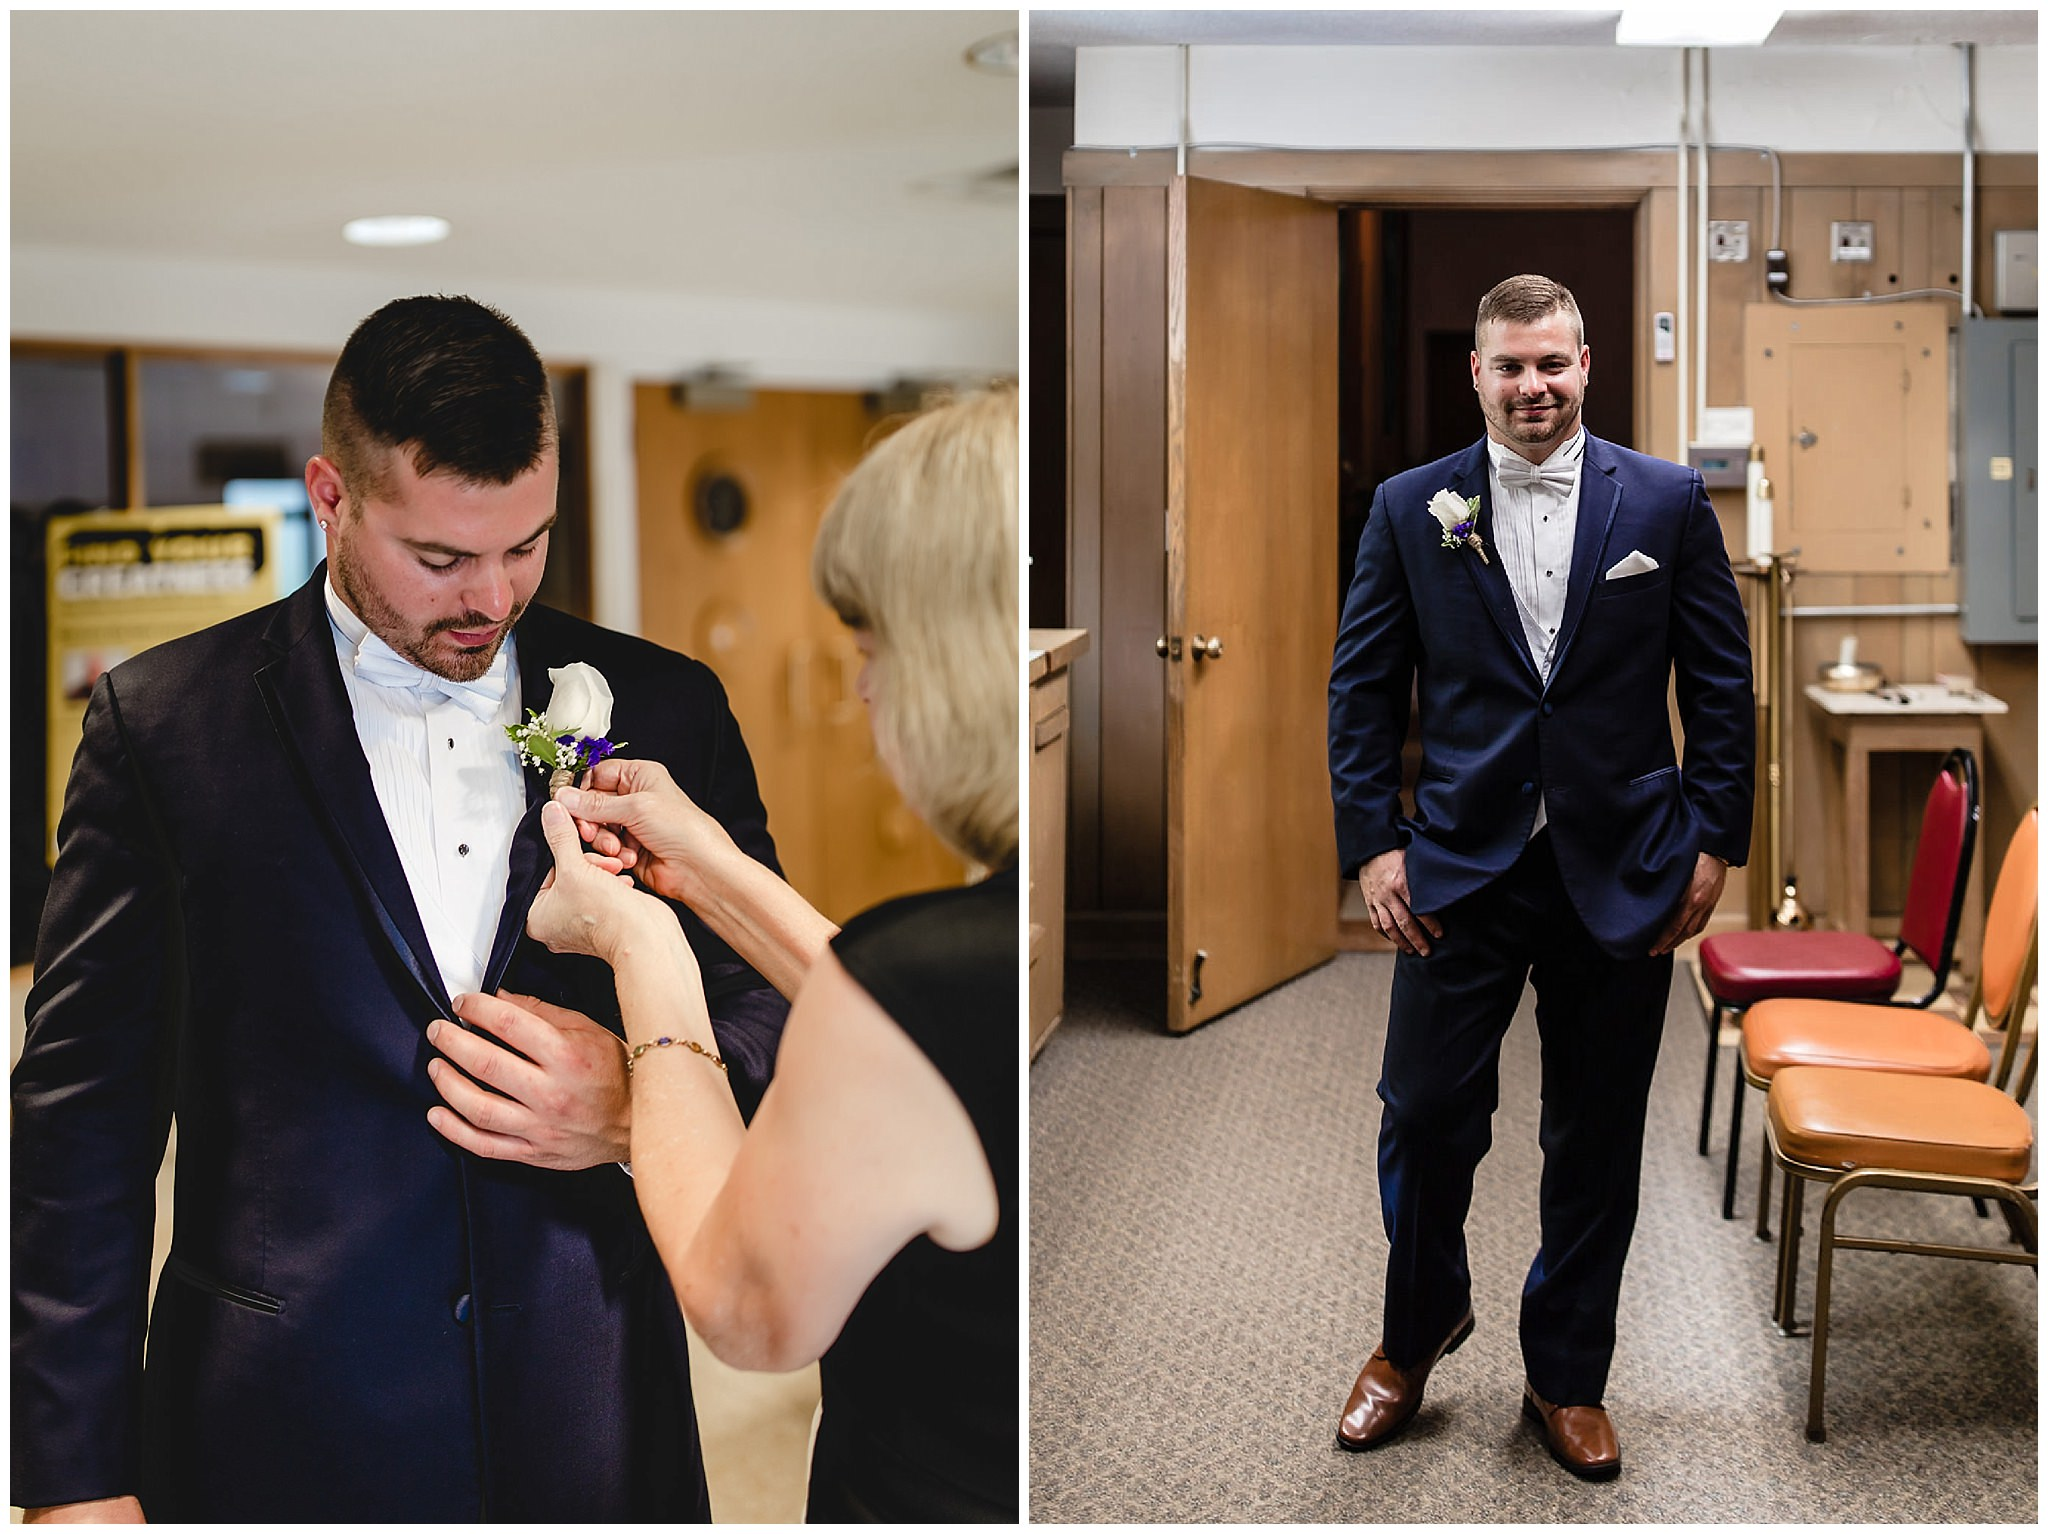 Groom gets his boutonniere pinned on before his wedding at St. Titus Church in Aliquippa